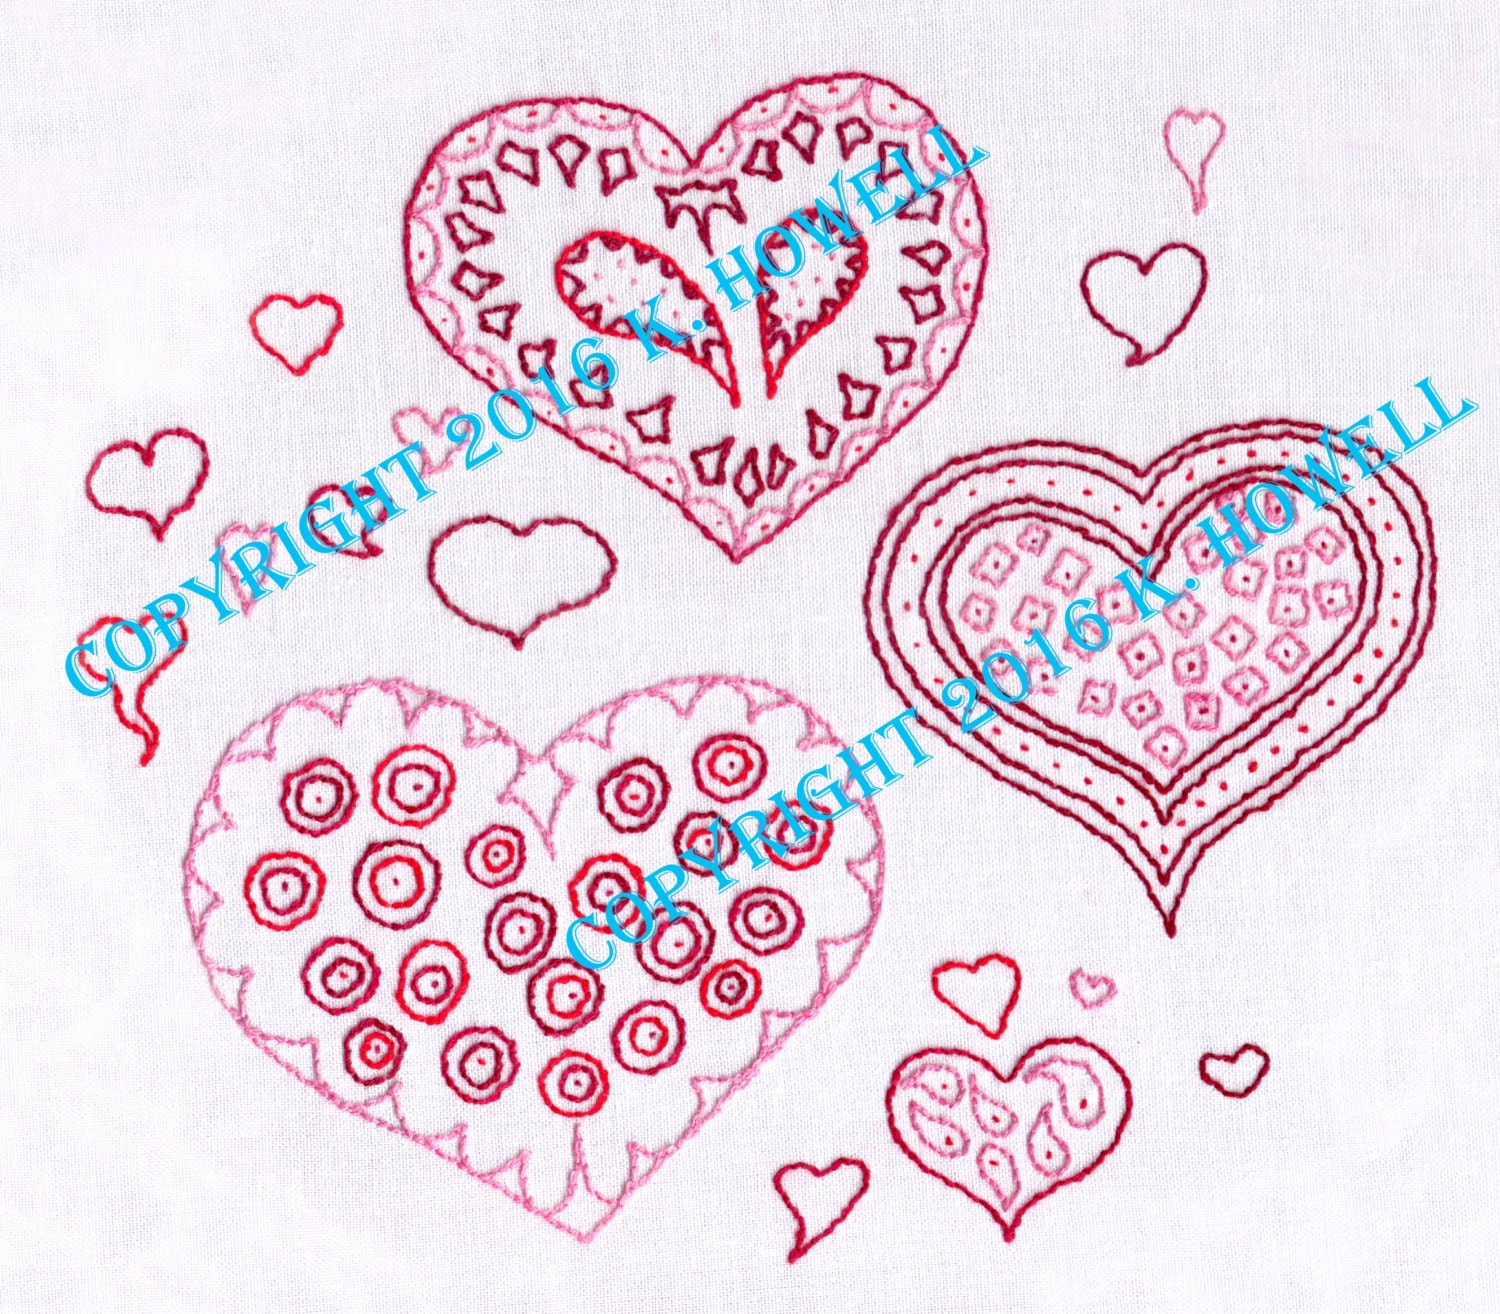 Hearts Hand Embroidery Pattern Paisley Love Valentine Cute Romance Romantic PDF From ...